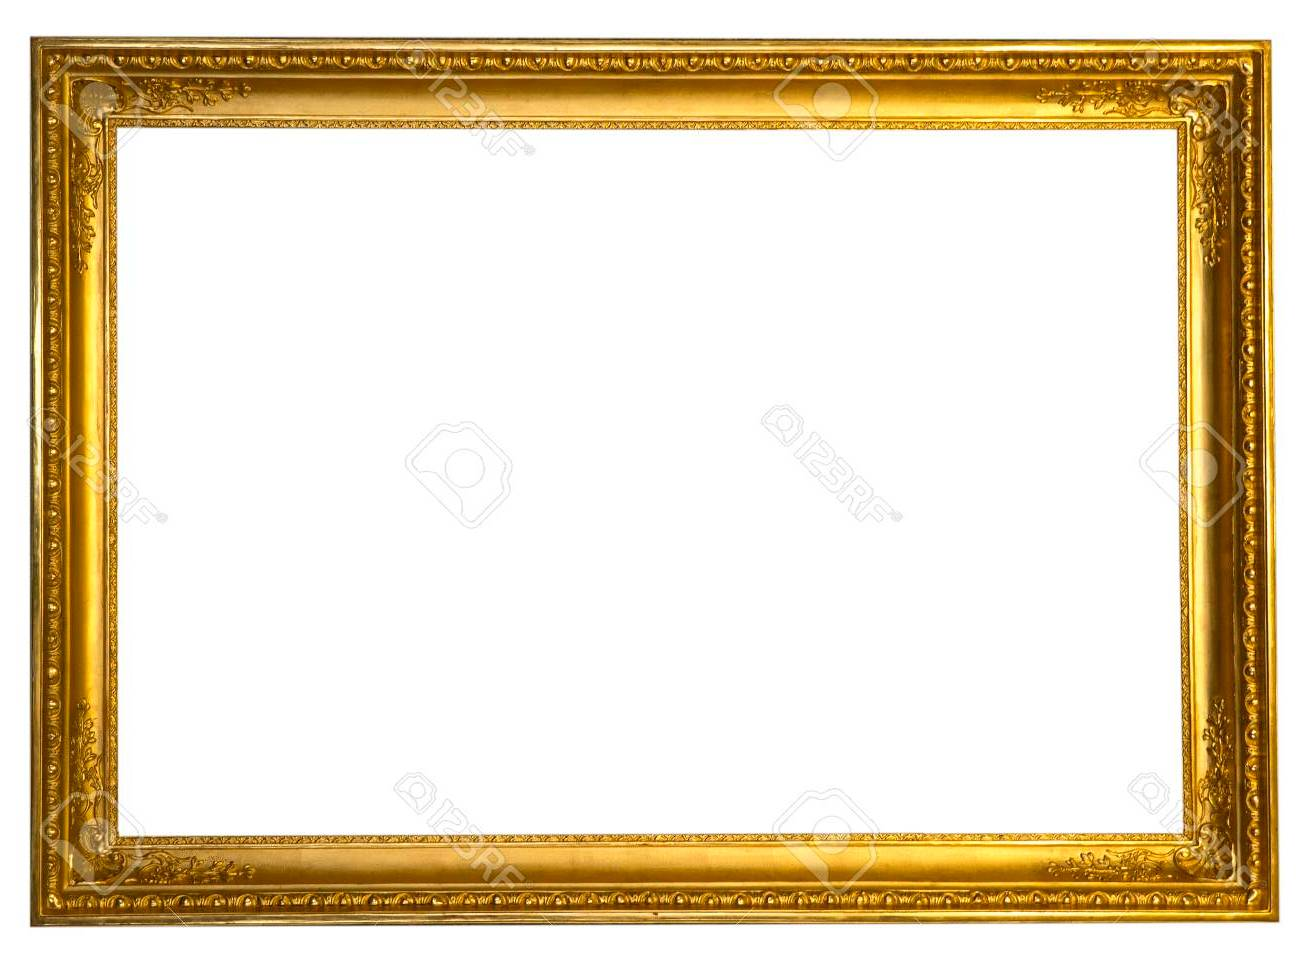 Background Masak Decorative Antique Golden Frame Isolated On White Background